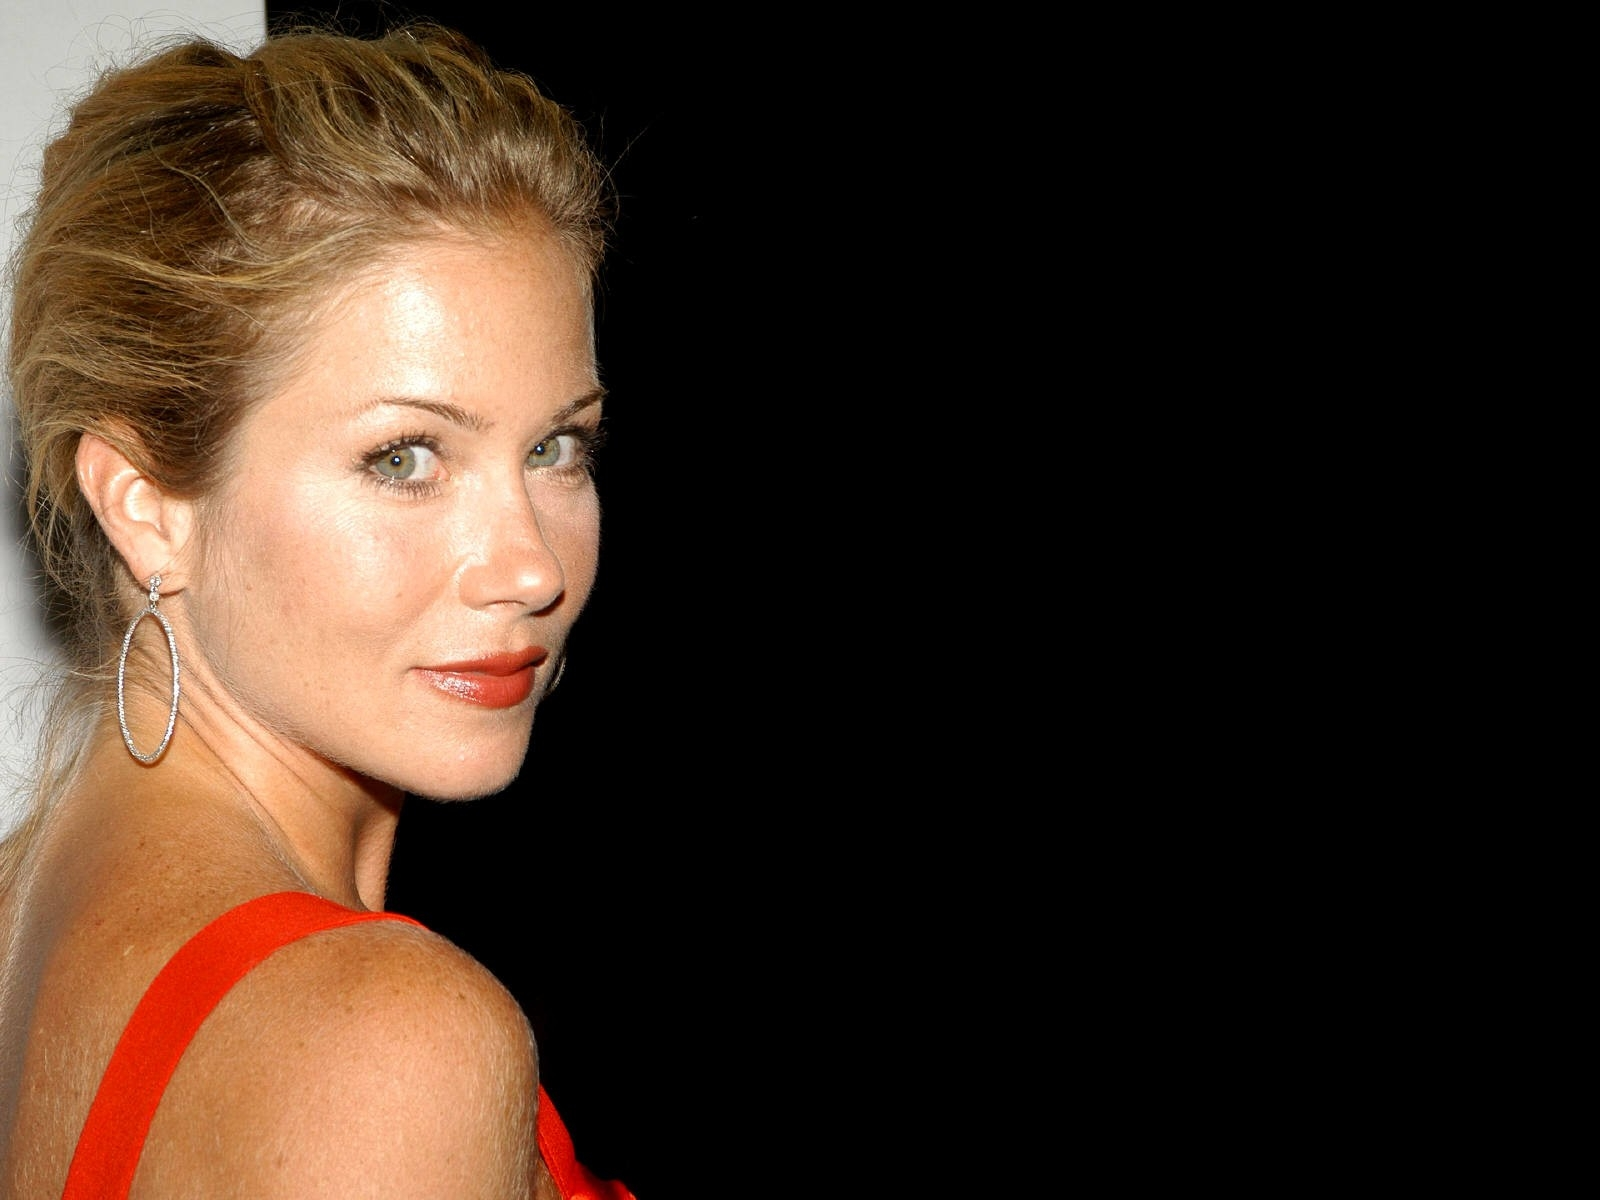 Wallpaper dell'attrice Christina Applegate